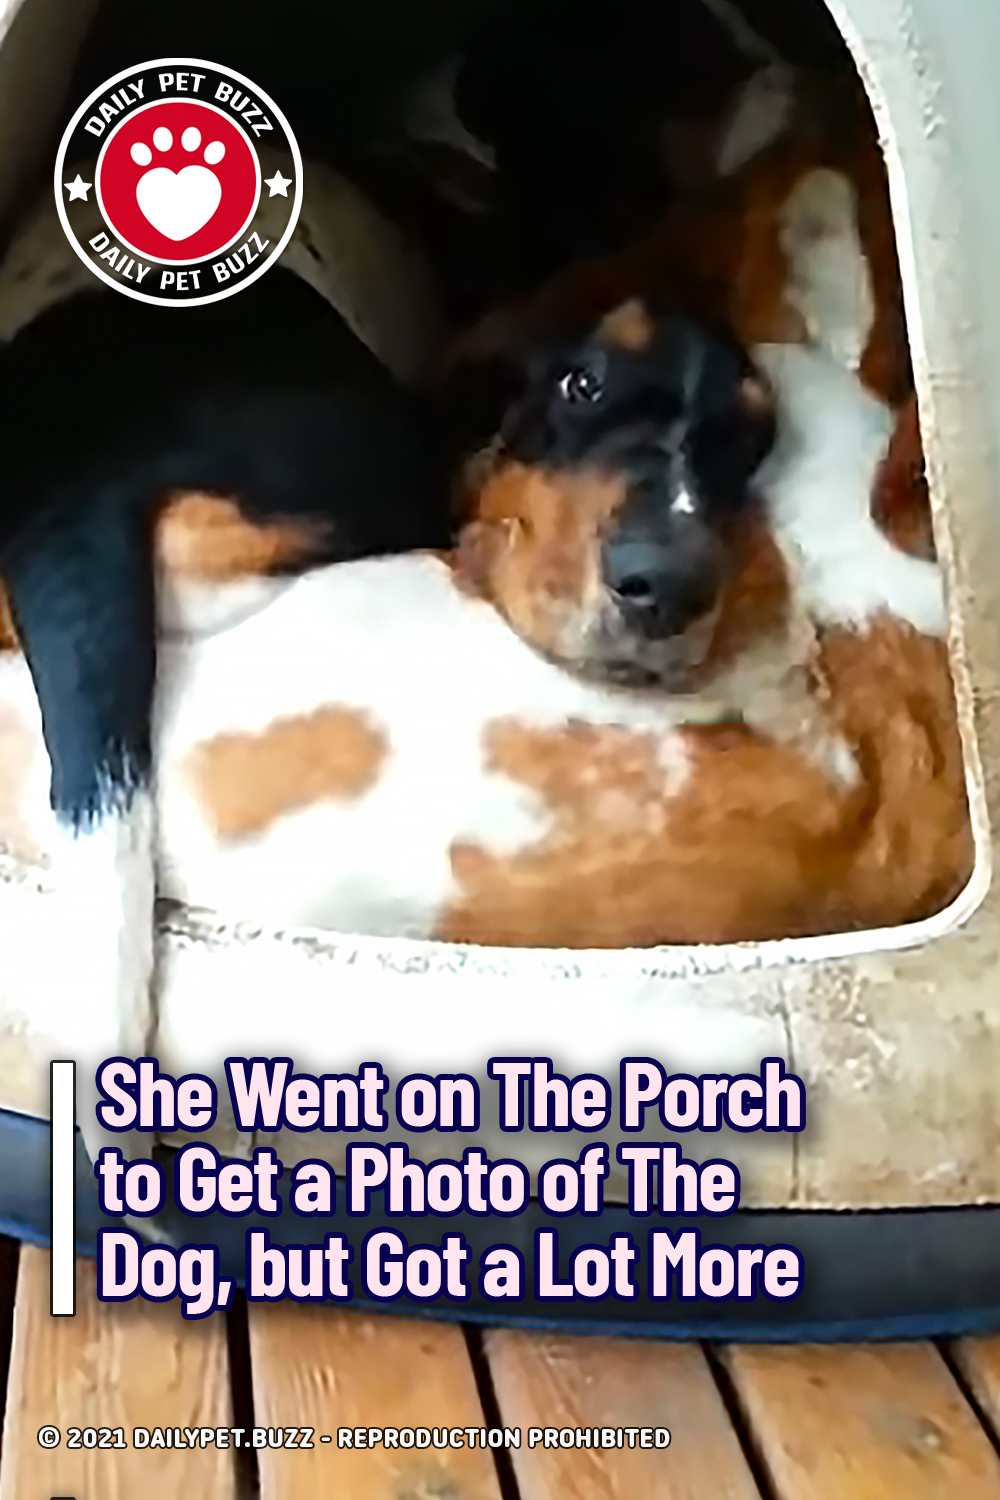 She Went on The Porch to Get a Photo of The Dog, but Got a Lot More